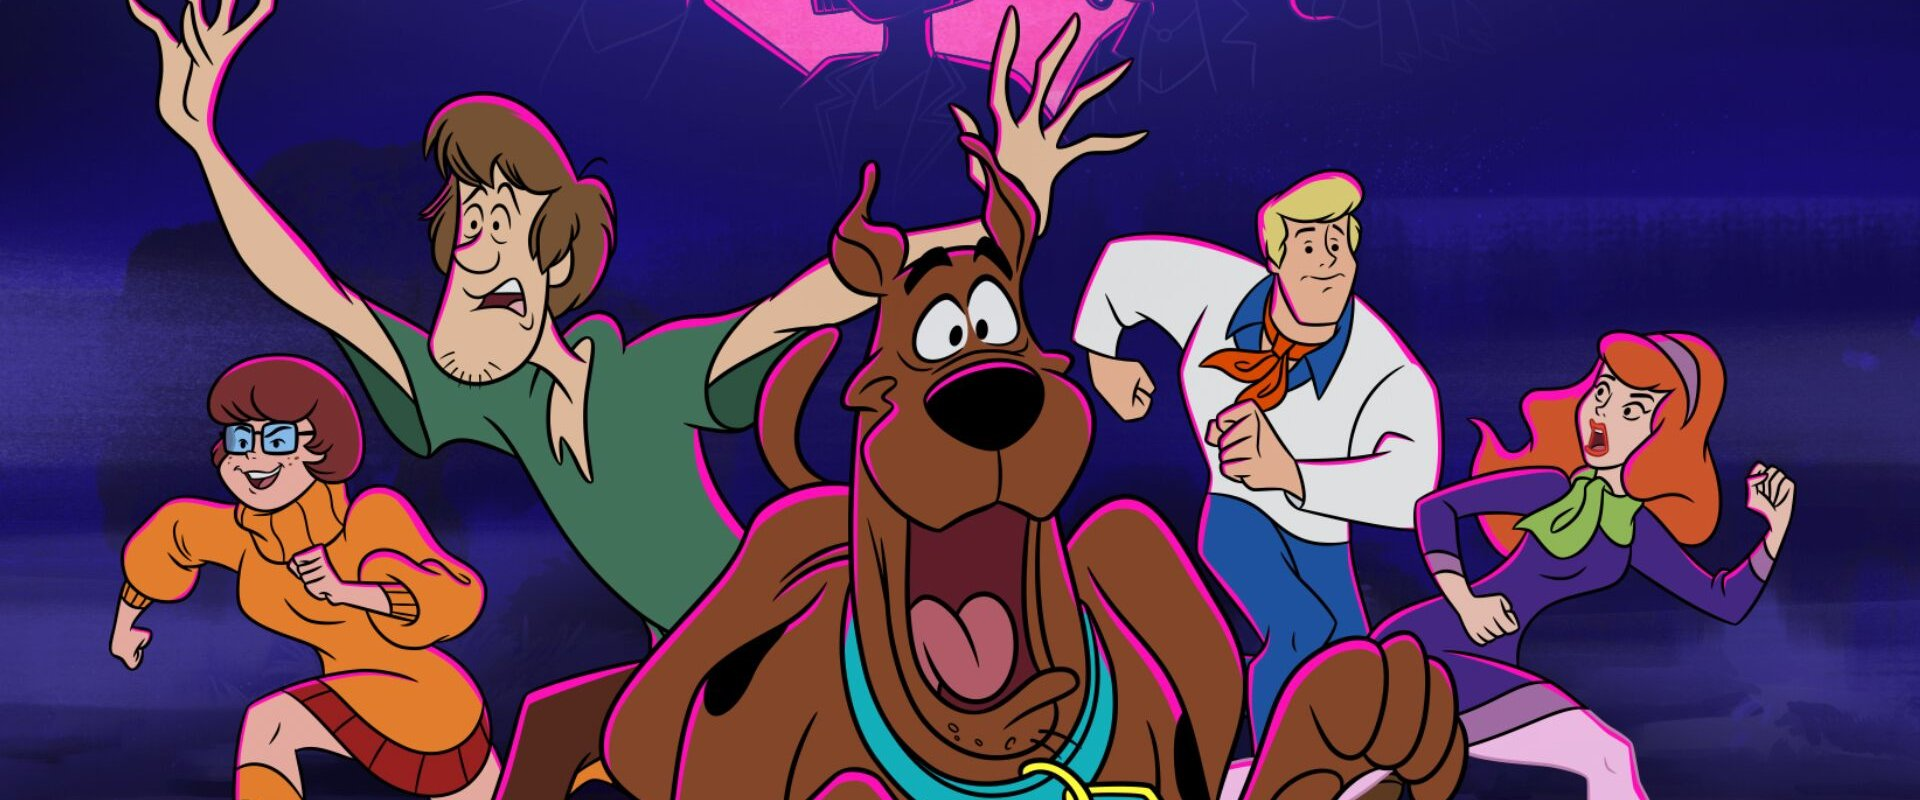 Scooby Doo and his team